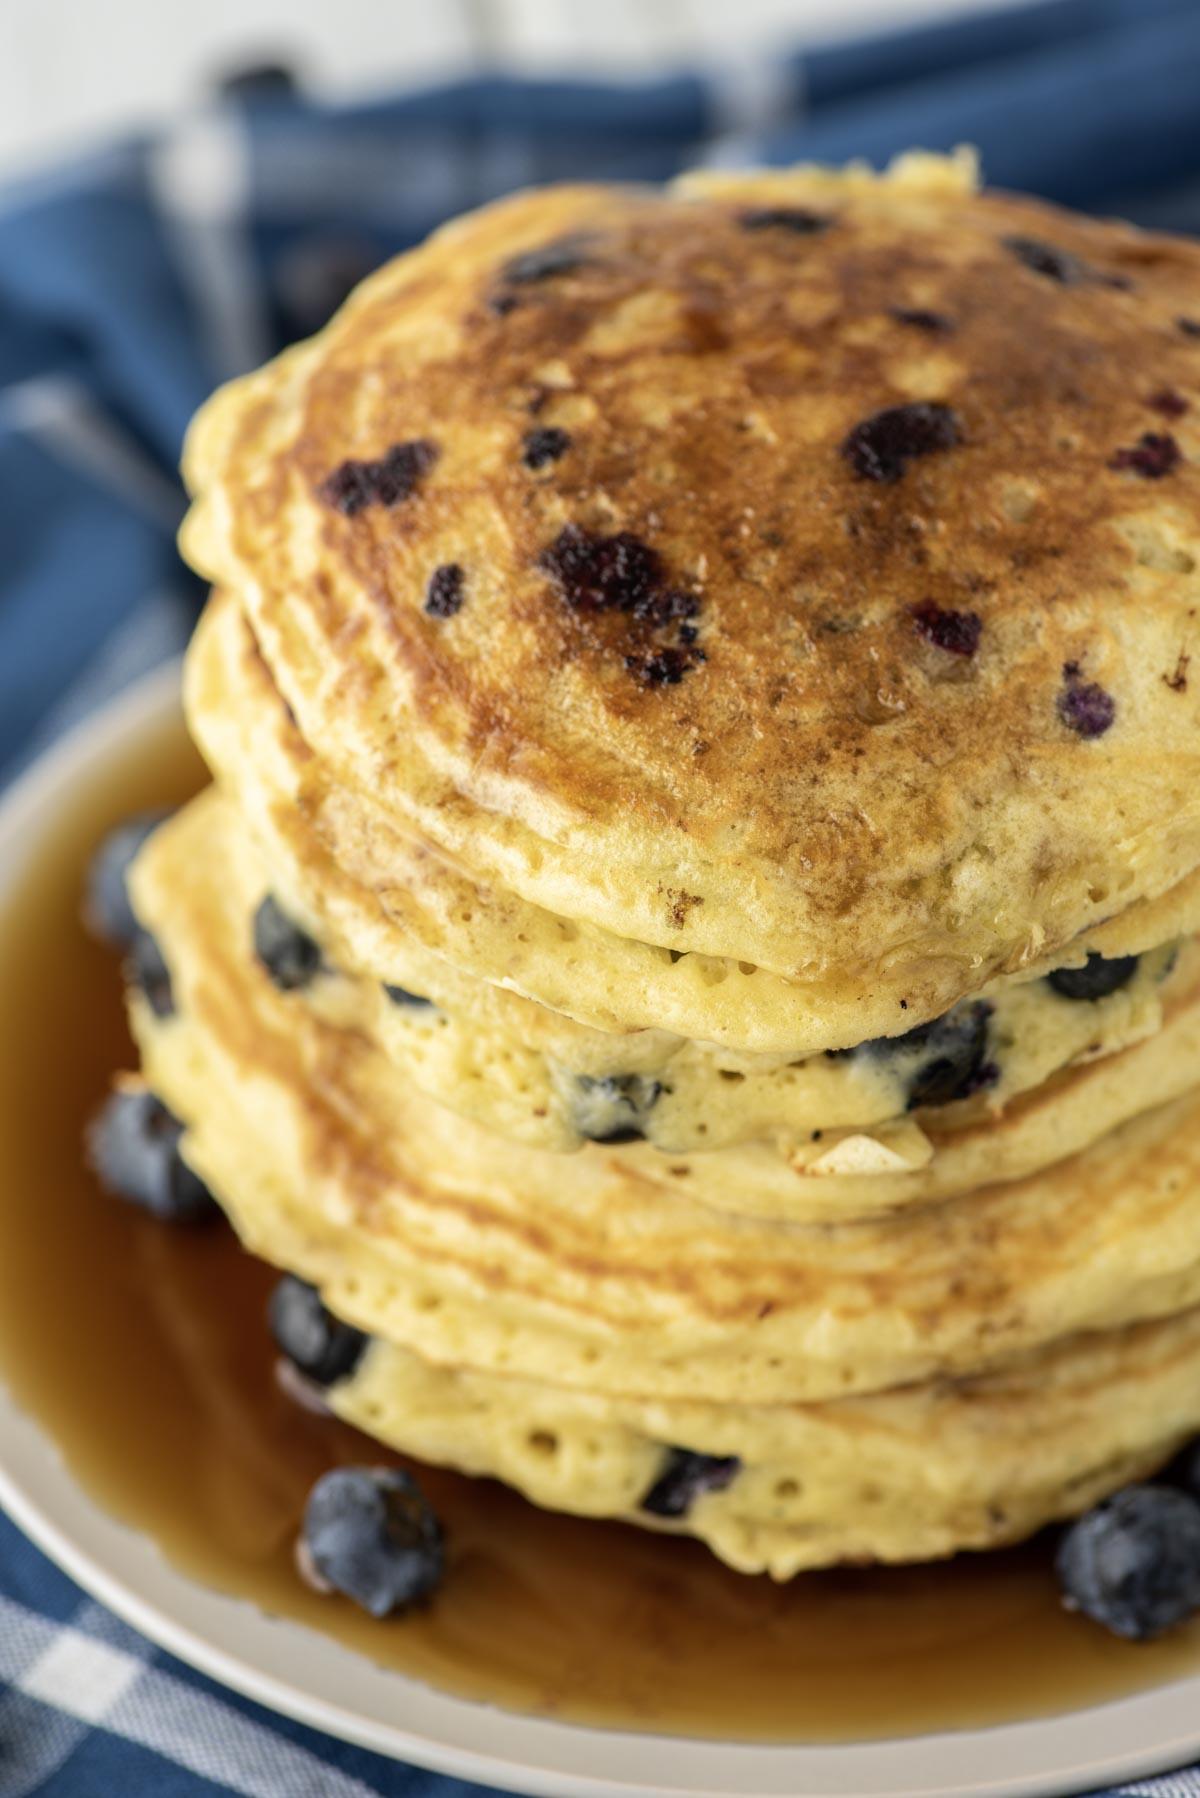 maple syrup on stacked blueberry pancakes